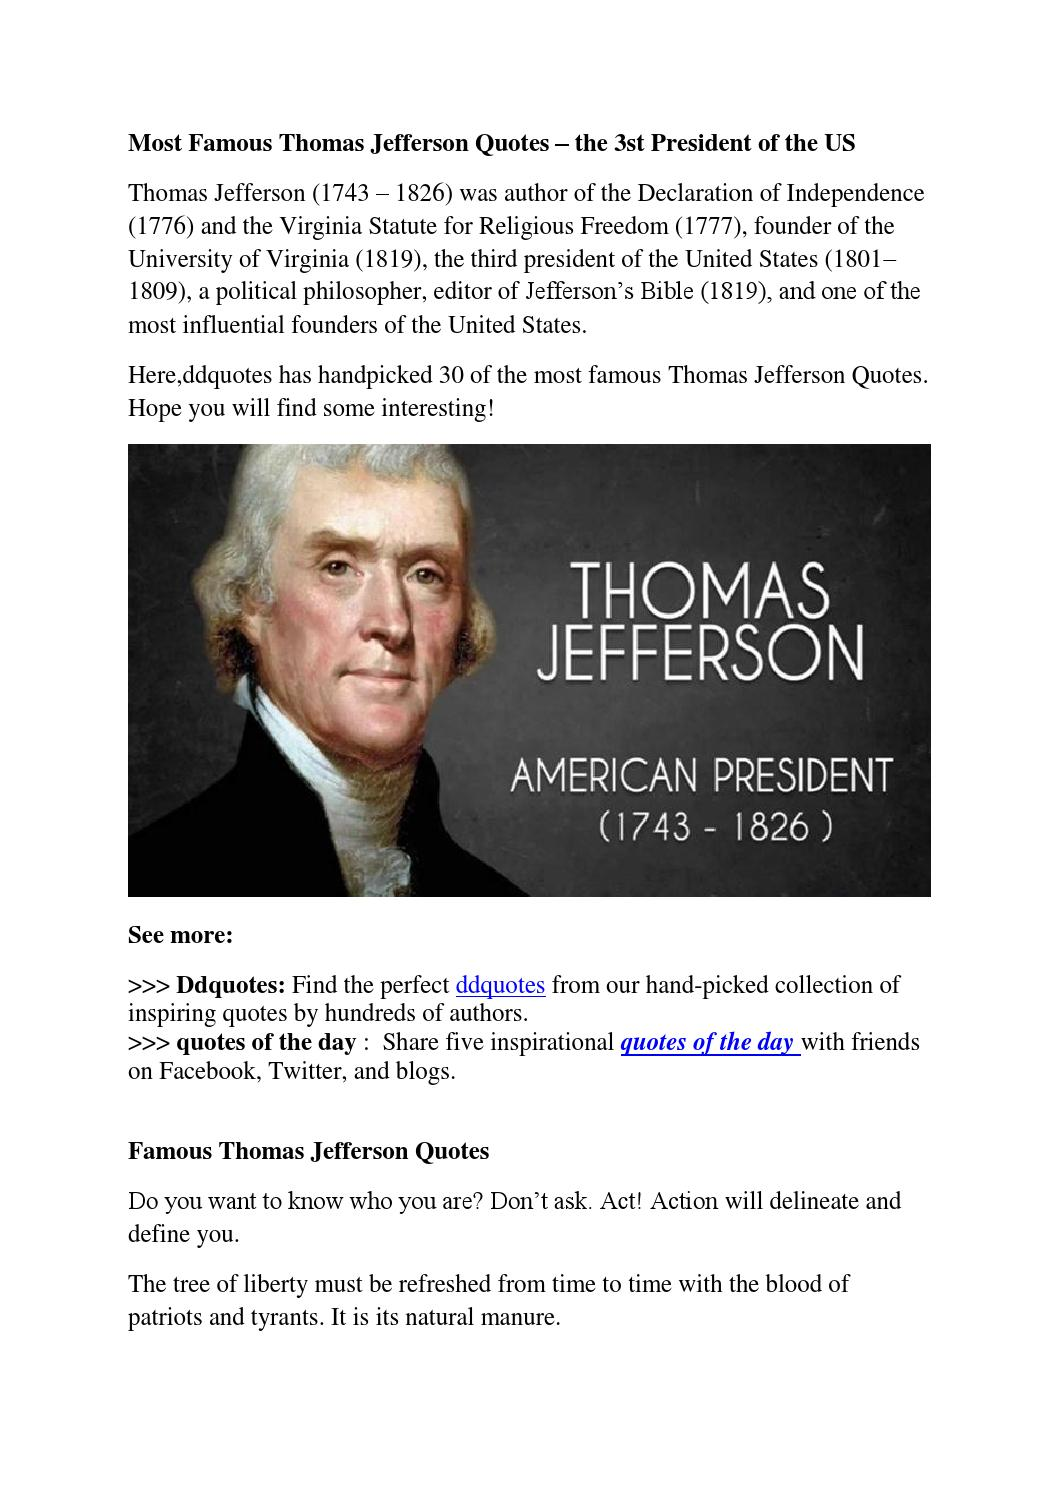 dbq 4 thomas jefferson and philosophical consistency Dbq thomas jefferson dbq 3 jefferson and philosophical c…  related searches for jefferson and madison dbq 1998  dbq 3 jefferson and philosophical consistency.